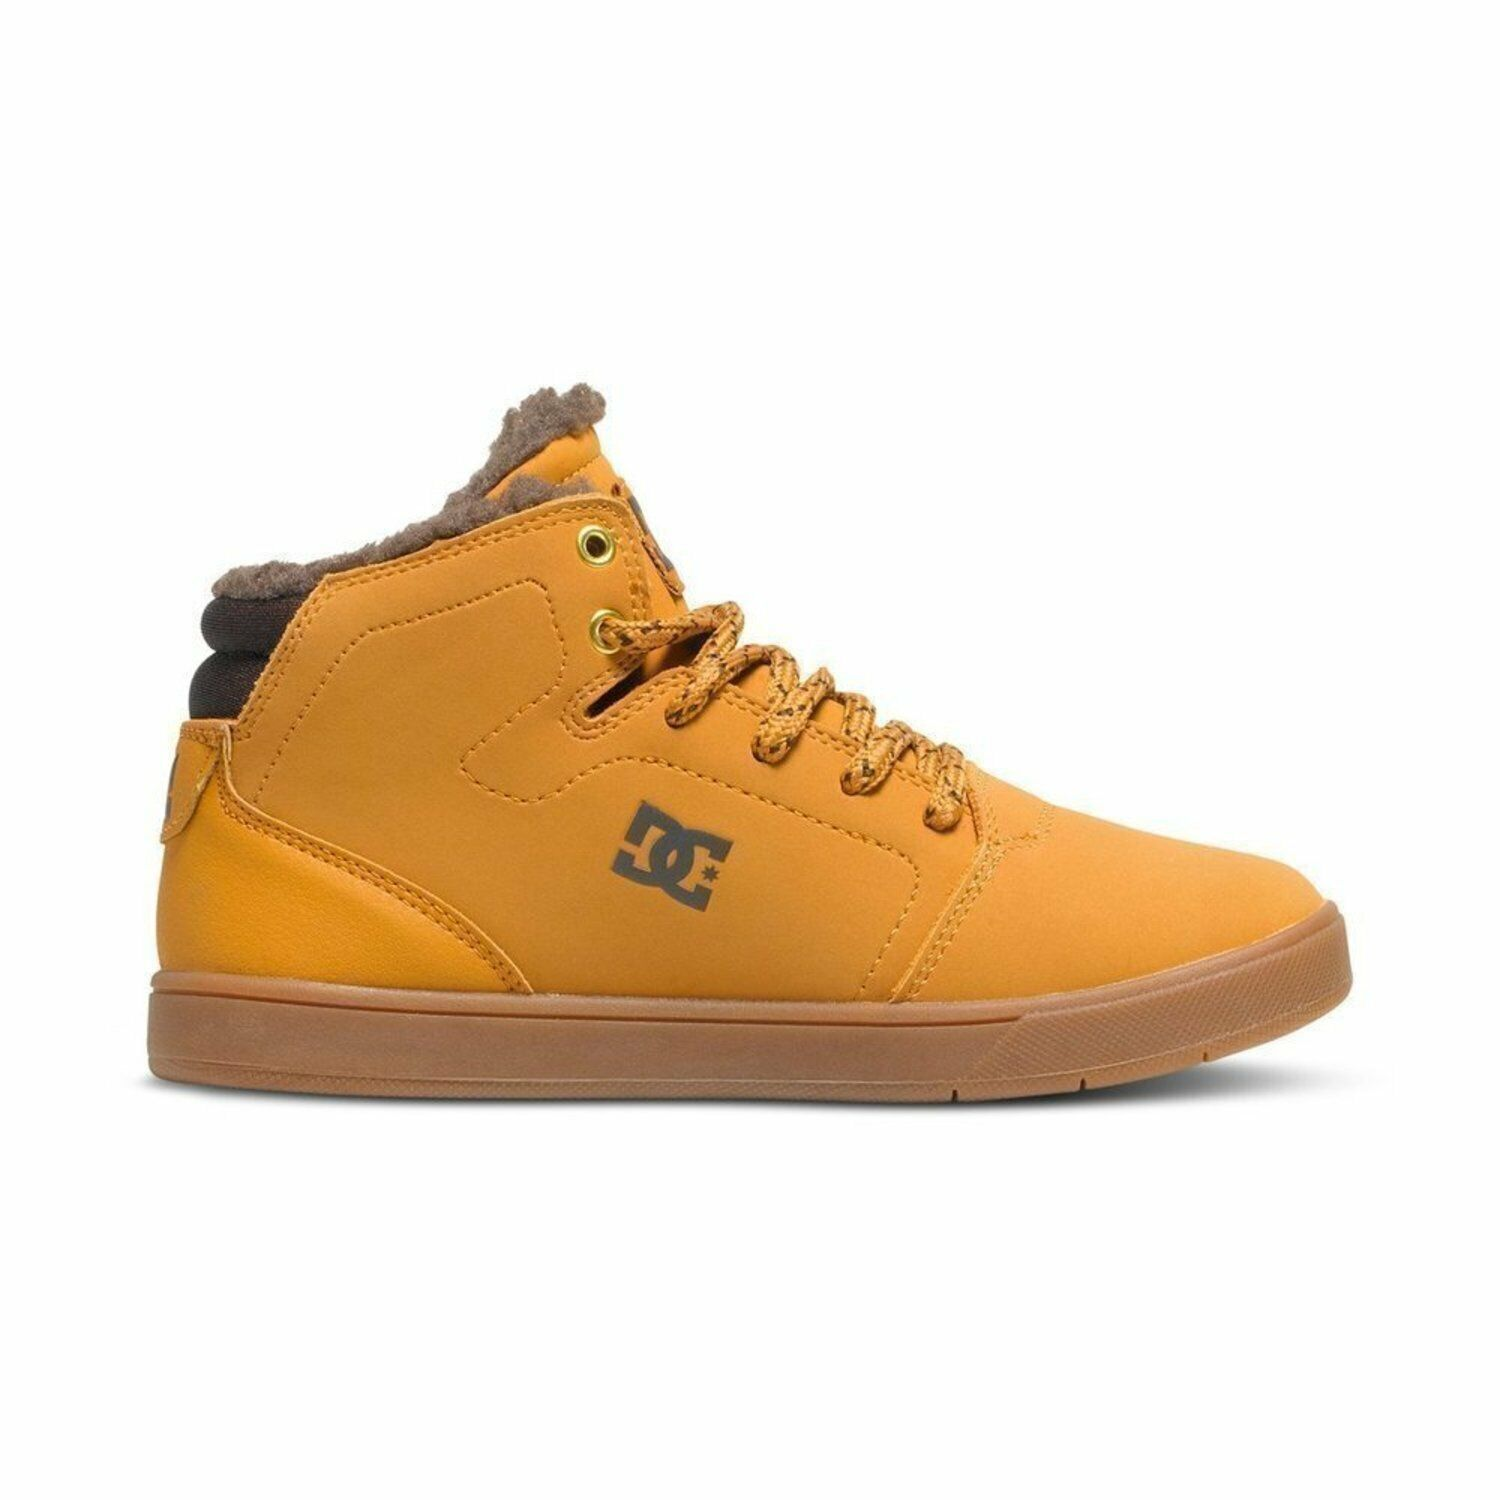 DC shoes Kids Crisis High Wnt Wheat Fw 2017 Baby Shoes New 33 34